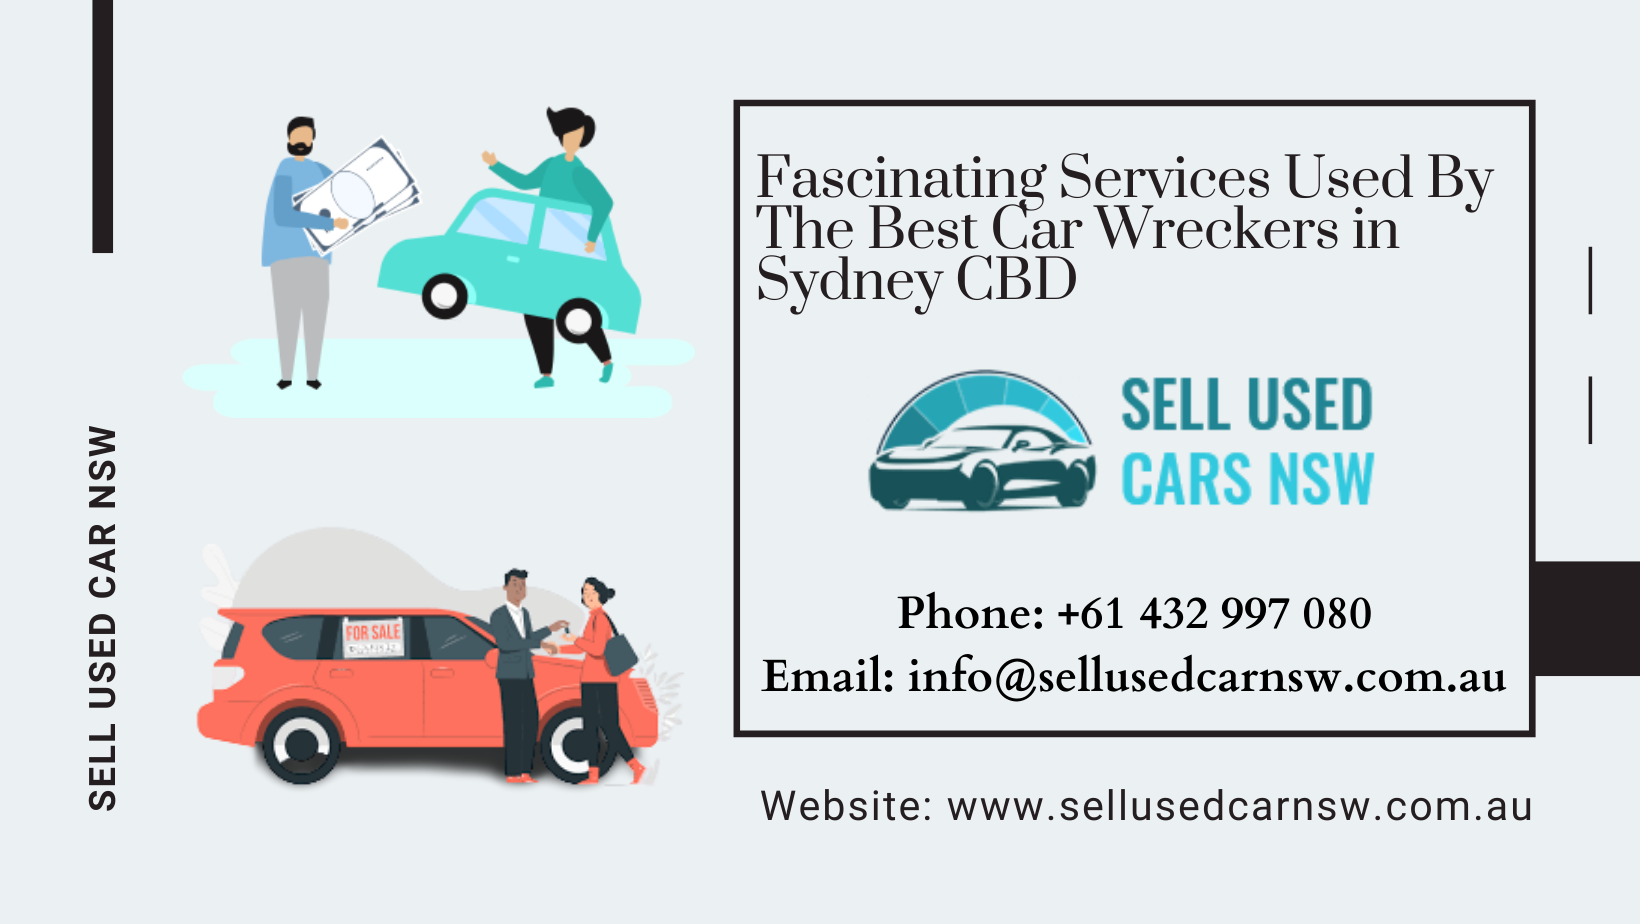 Fascinating Services Used By The Best Car Wreckers in Sydney CBD